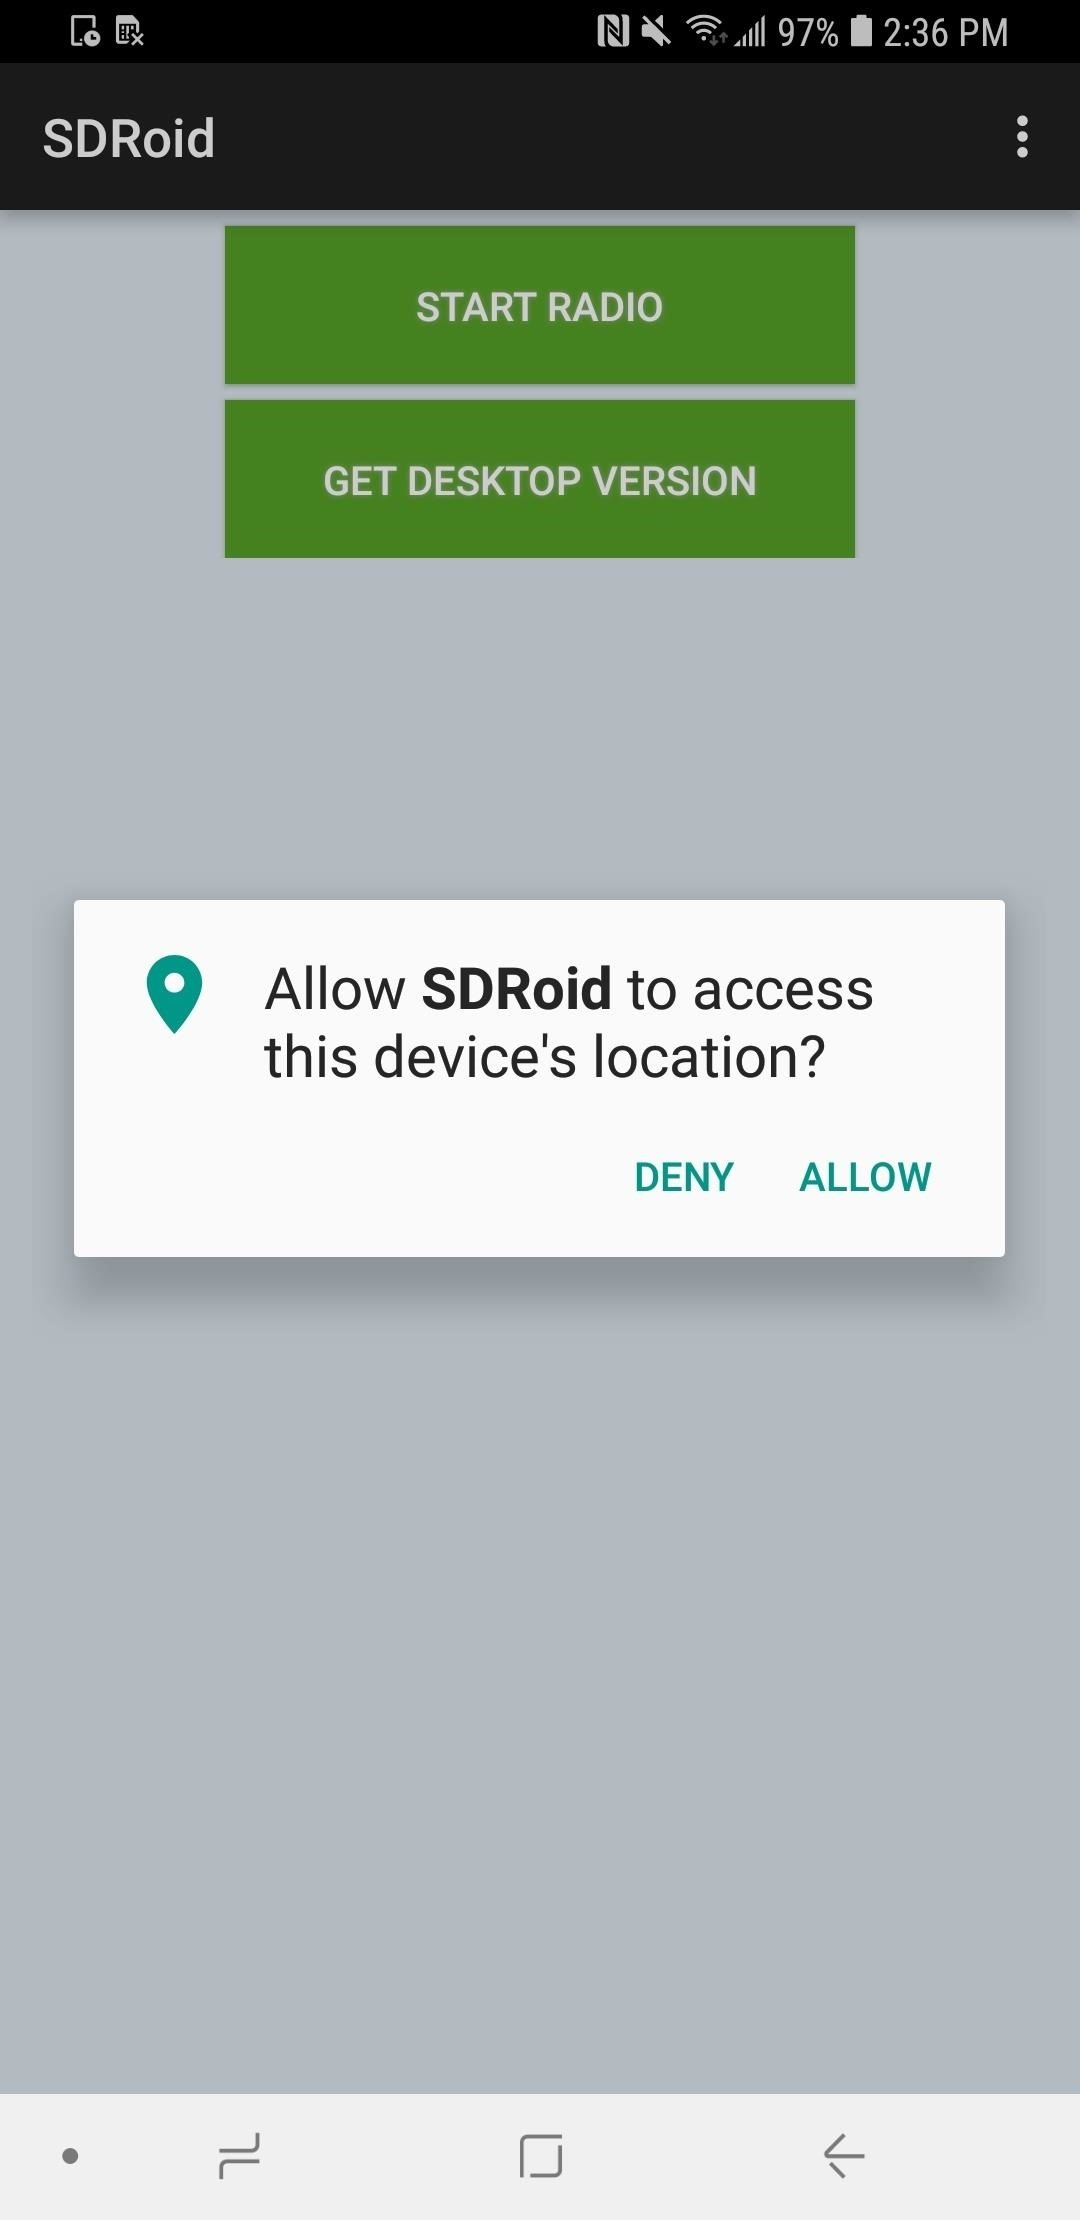 How to Listen to Radio Conversations on Android with an RTL-SDR Dongle & OTG Adapter